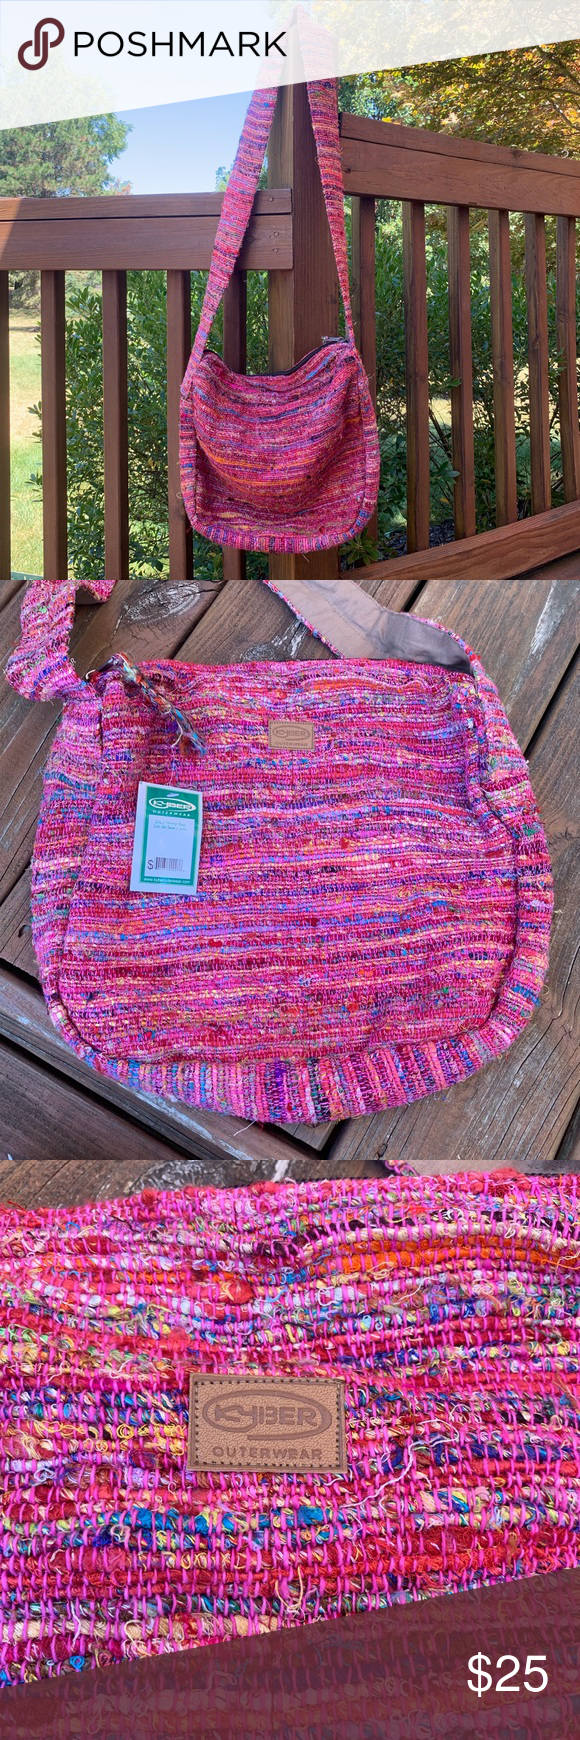 Nwt Kyber Outerwear Boho Knit Crossbody Brand New With Tags Handmade In Himalayas Style Relaxed Boho Crossbody Crossbody Crossbody Bag Relaxed Boho [ 1740 x 580 Pixel ]